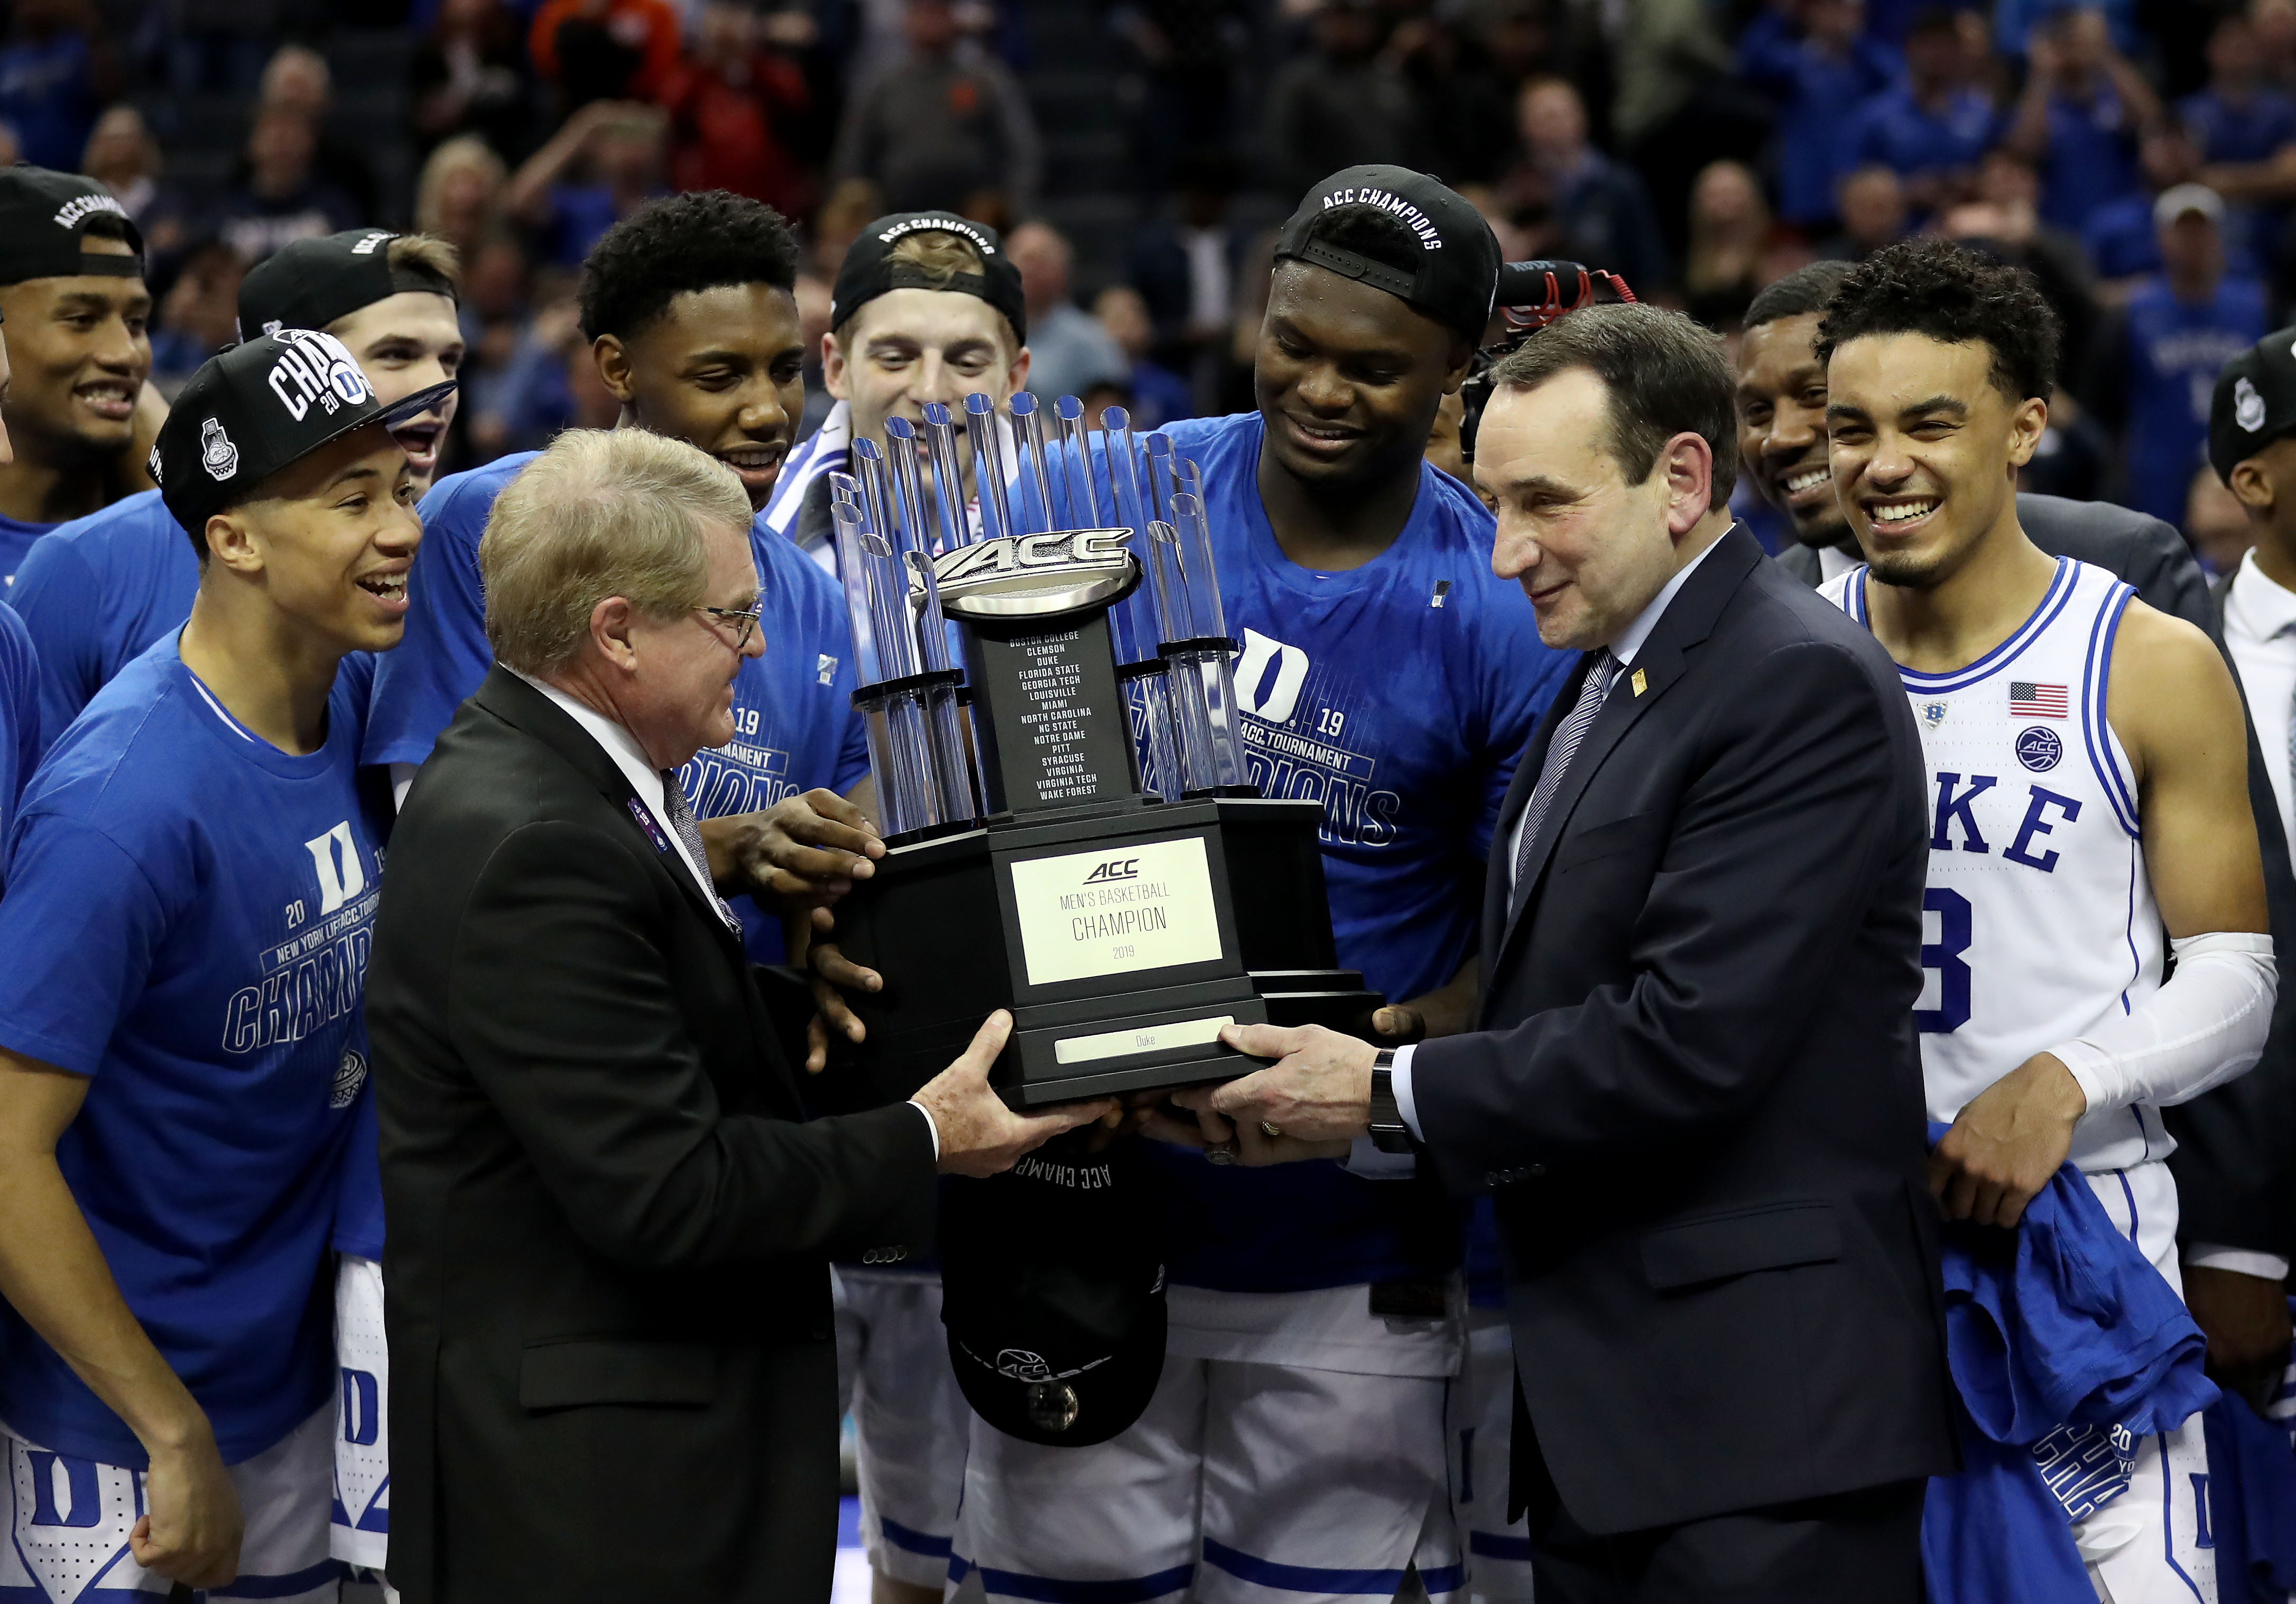 sports shoes dcae1 ccdac Duke earns No. 1 overall seed in men s NCAA Tournament - The Boston Globe